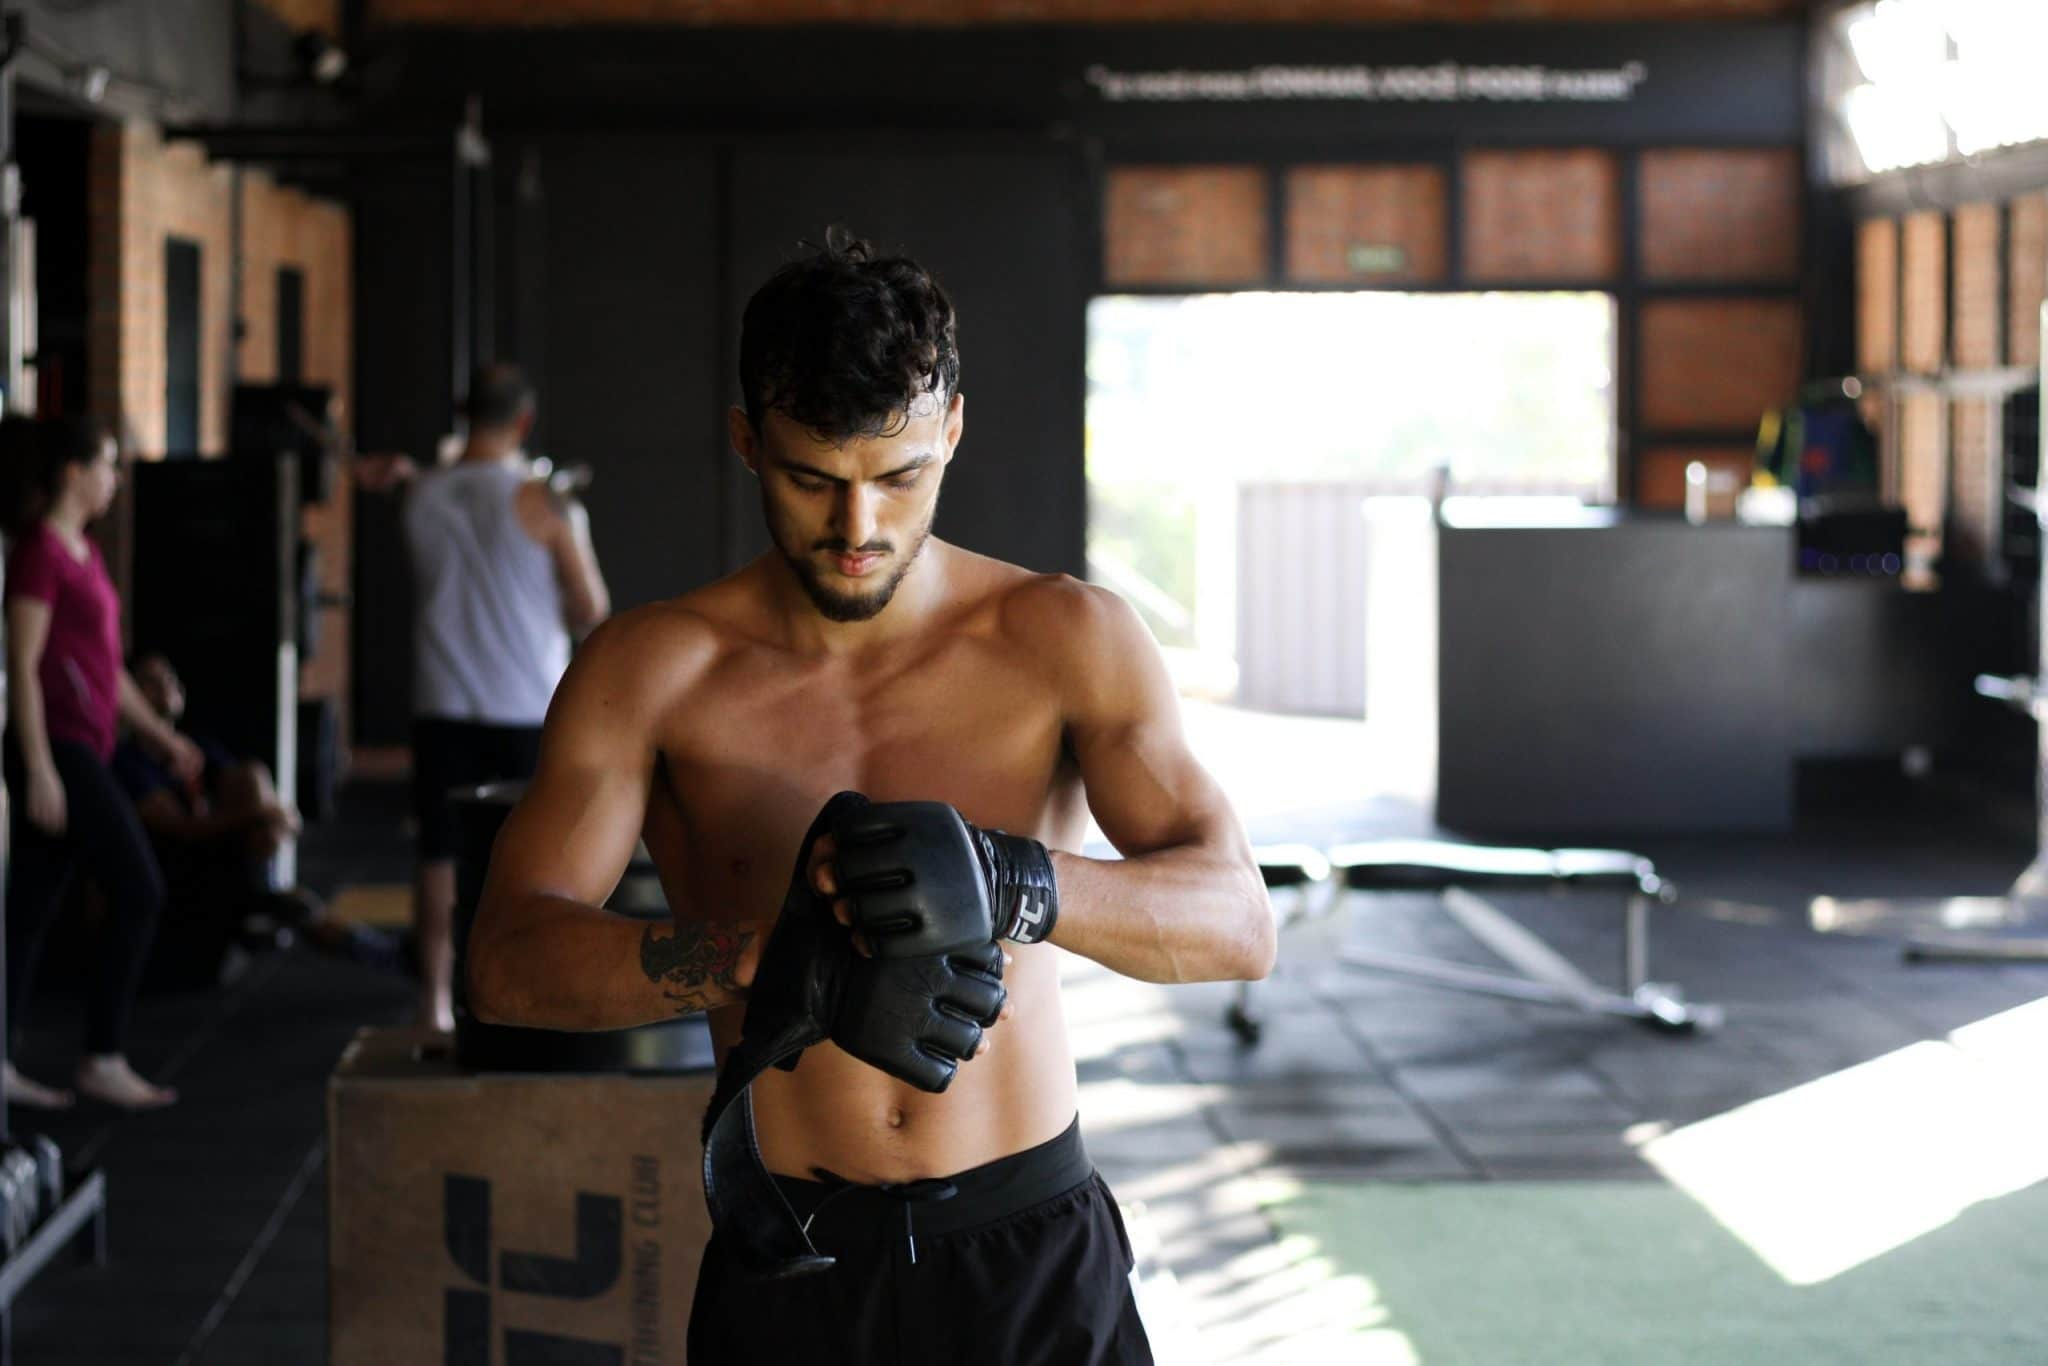 man-standing-in-gym-wearing-black-boxing-gloves